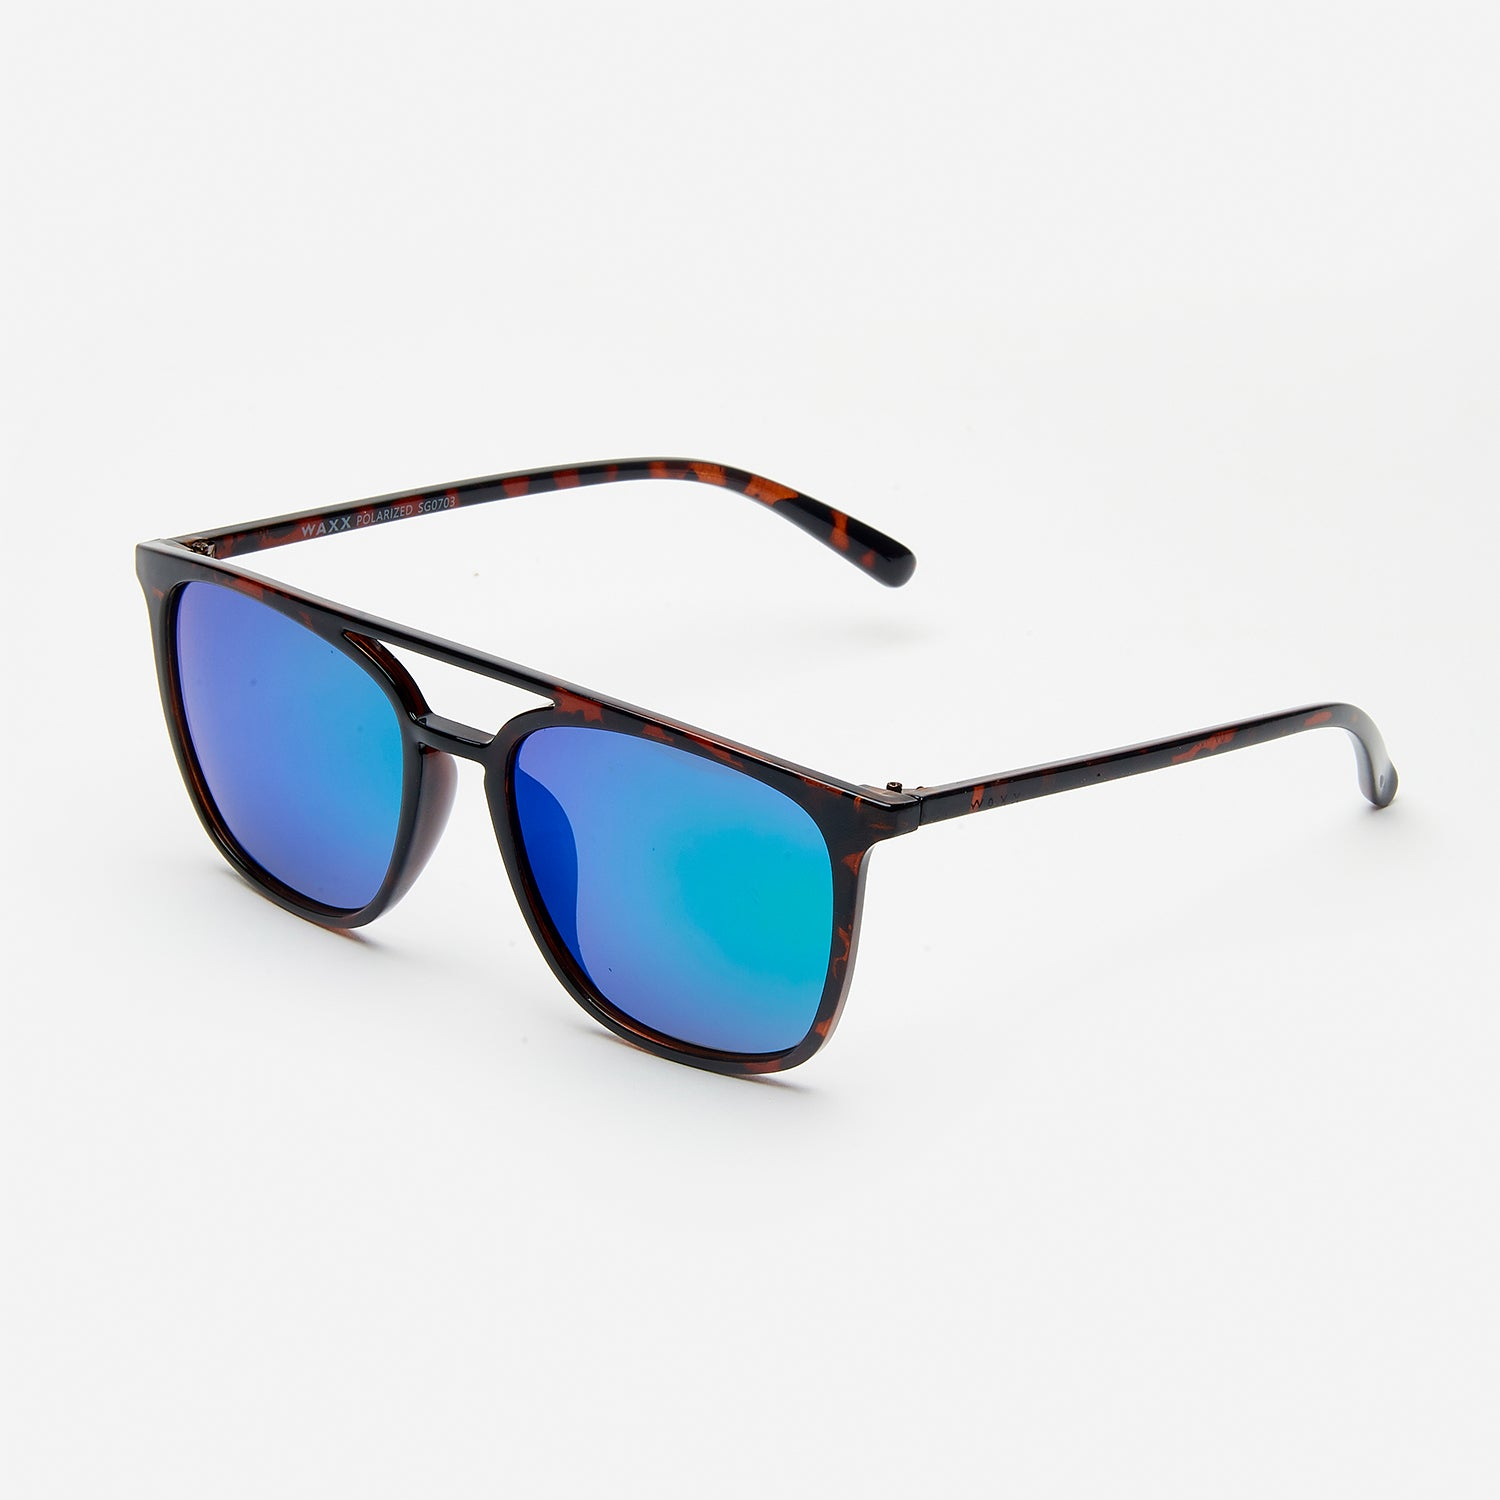 Waxx Retro Style Unisex Sunglasses Brown Marble Frame & Blue Lenses